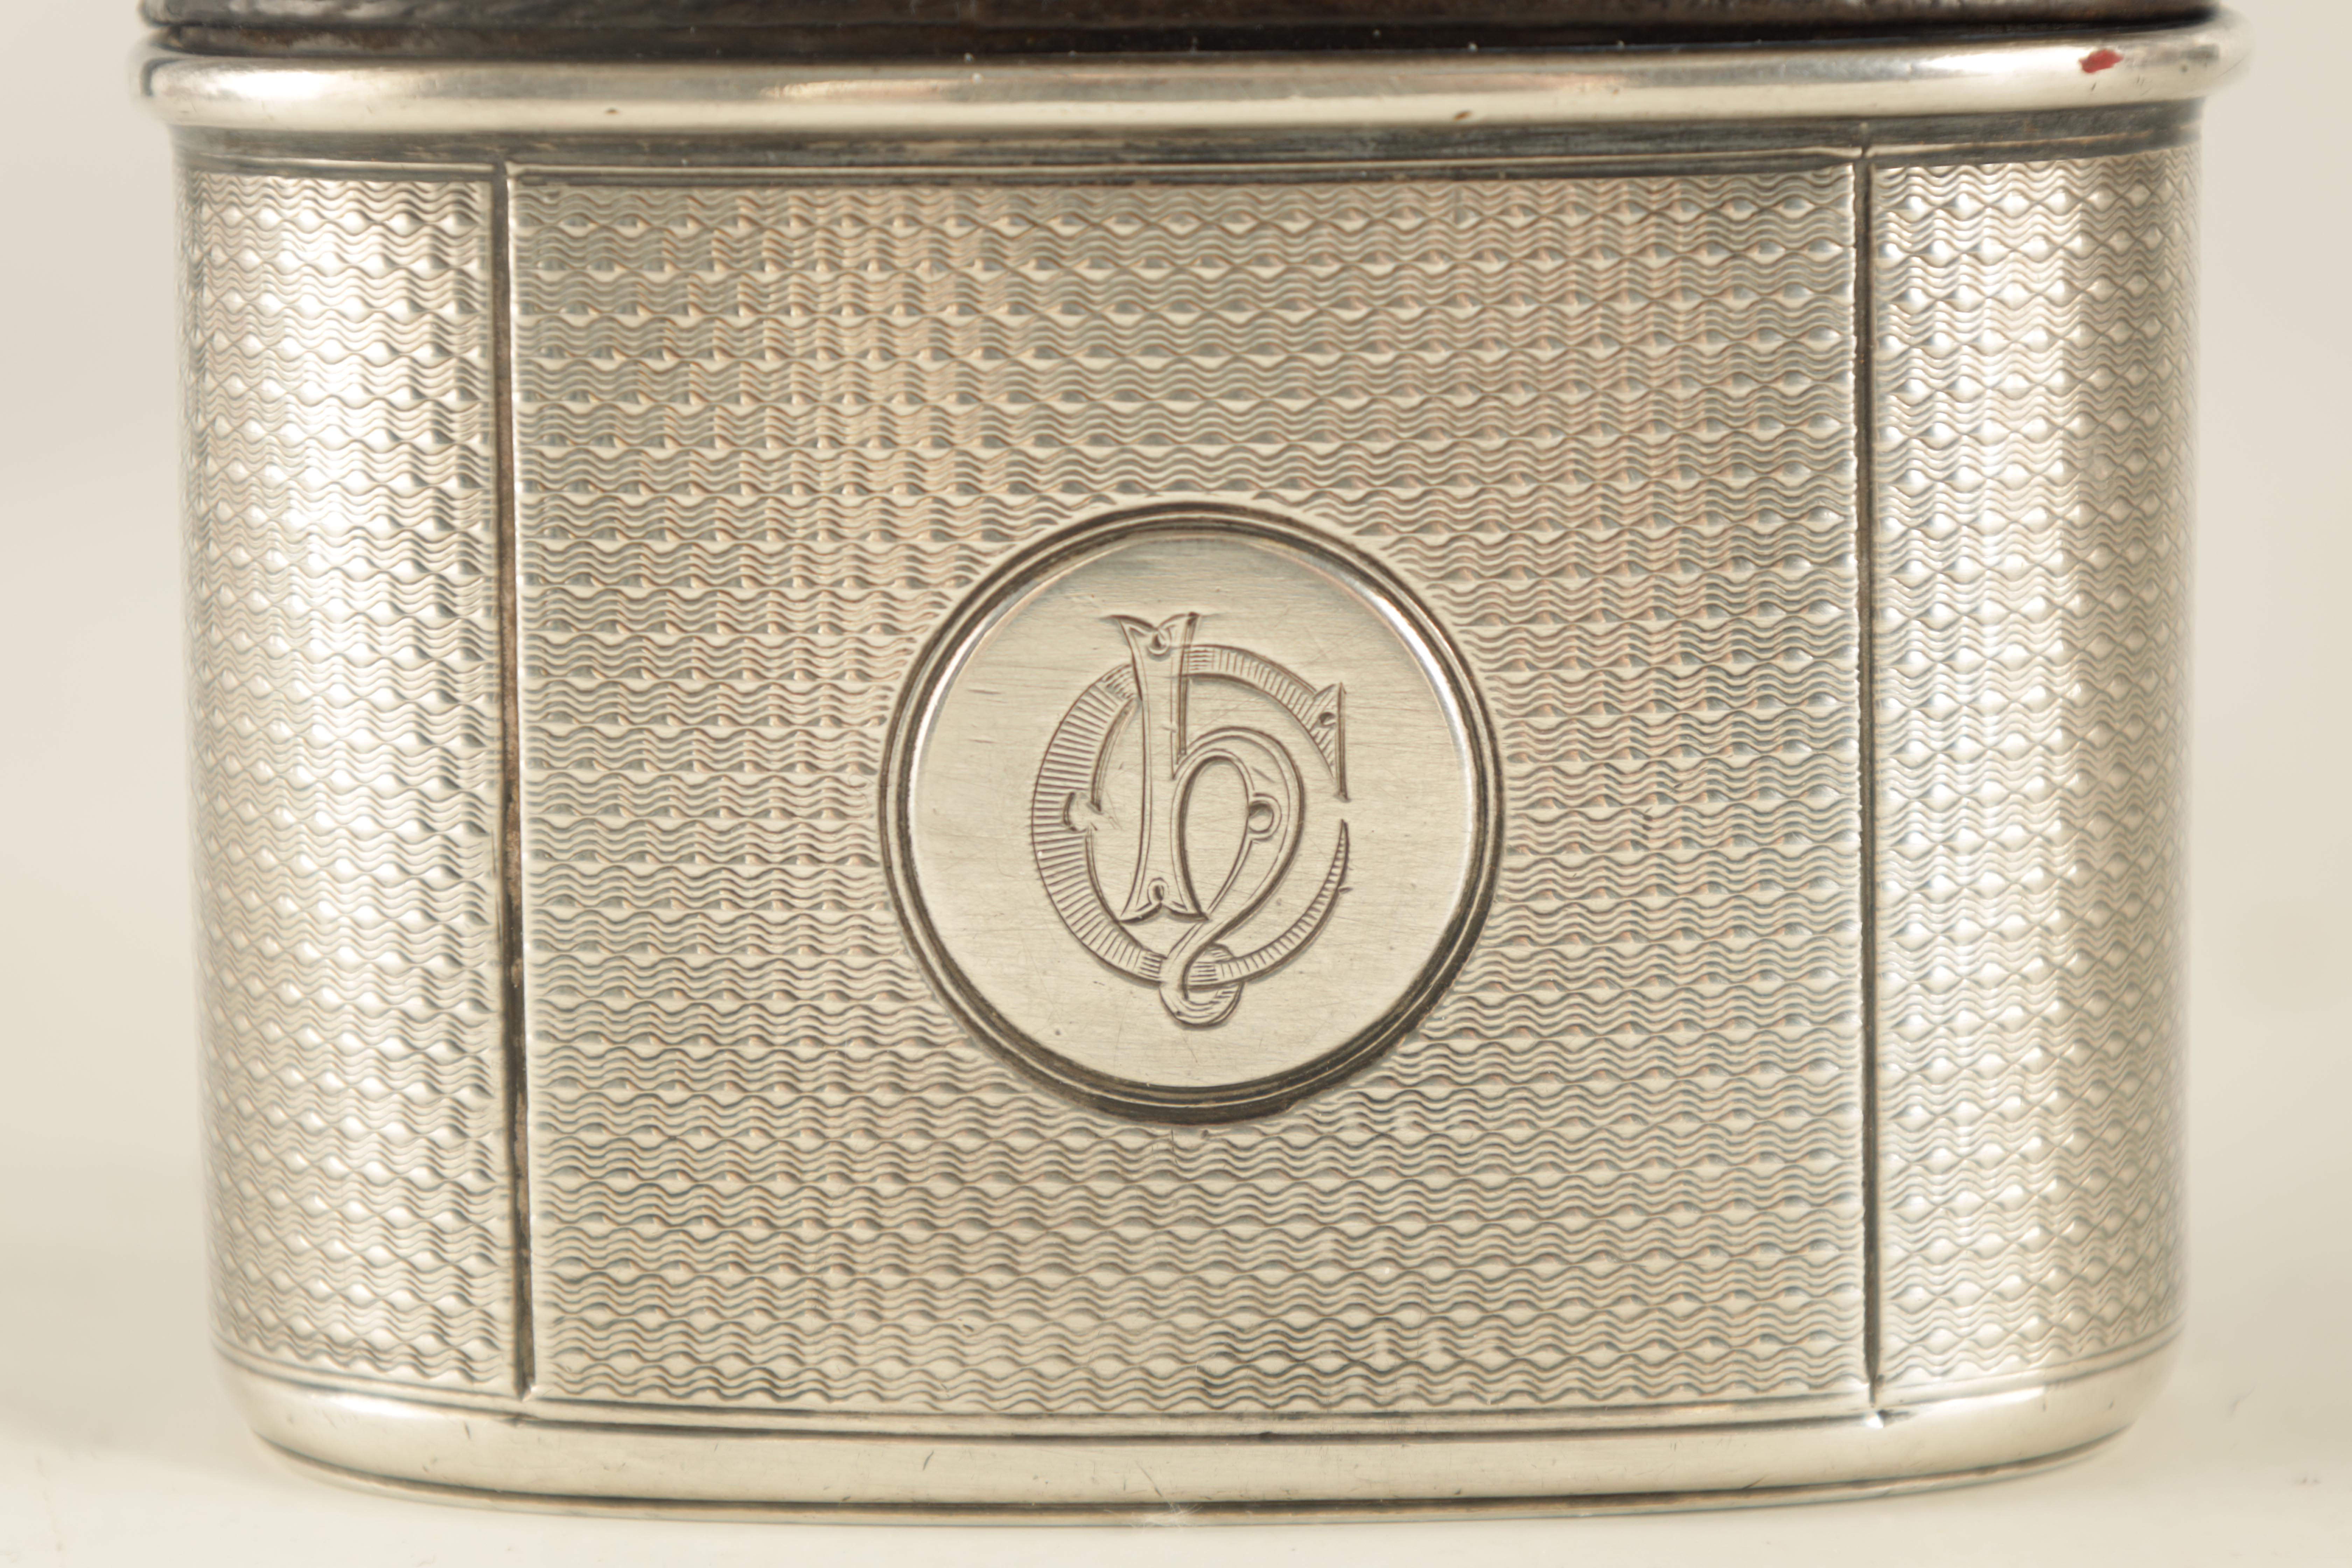 A VICTORIAN SILVER AND MOROCCAN LEATHER HIP FLASK RETAILED BY ASPREY 186 BOND STREET with engine- - Image 4 of 8